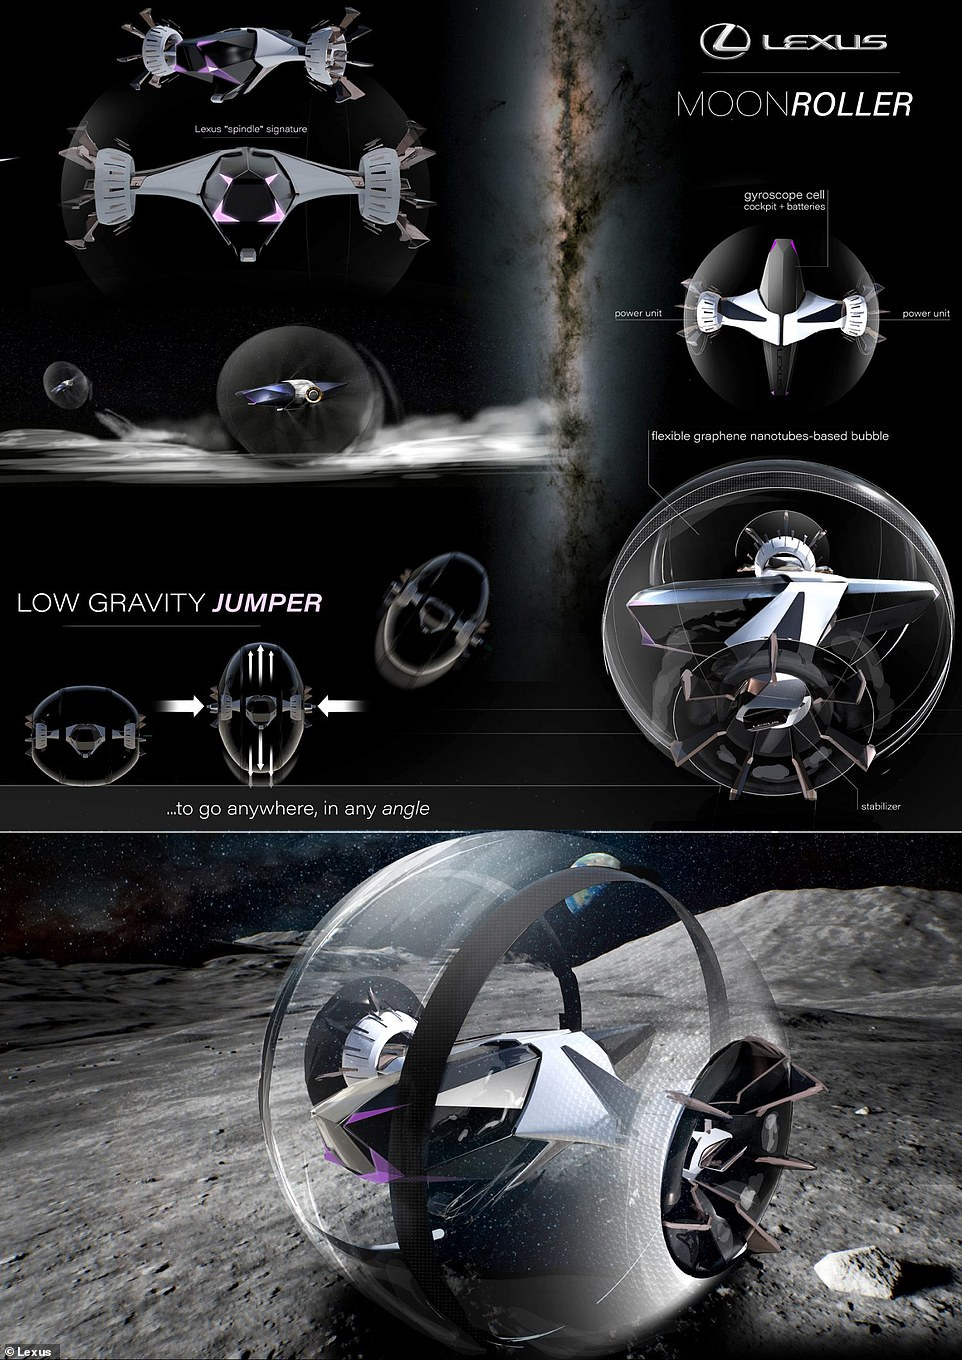 The Moon Roller (pictured above) is a center cockpit stabilized by a gyroscopic system and propelled by a flexible graphene bubble wheel